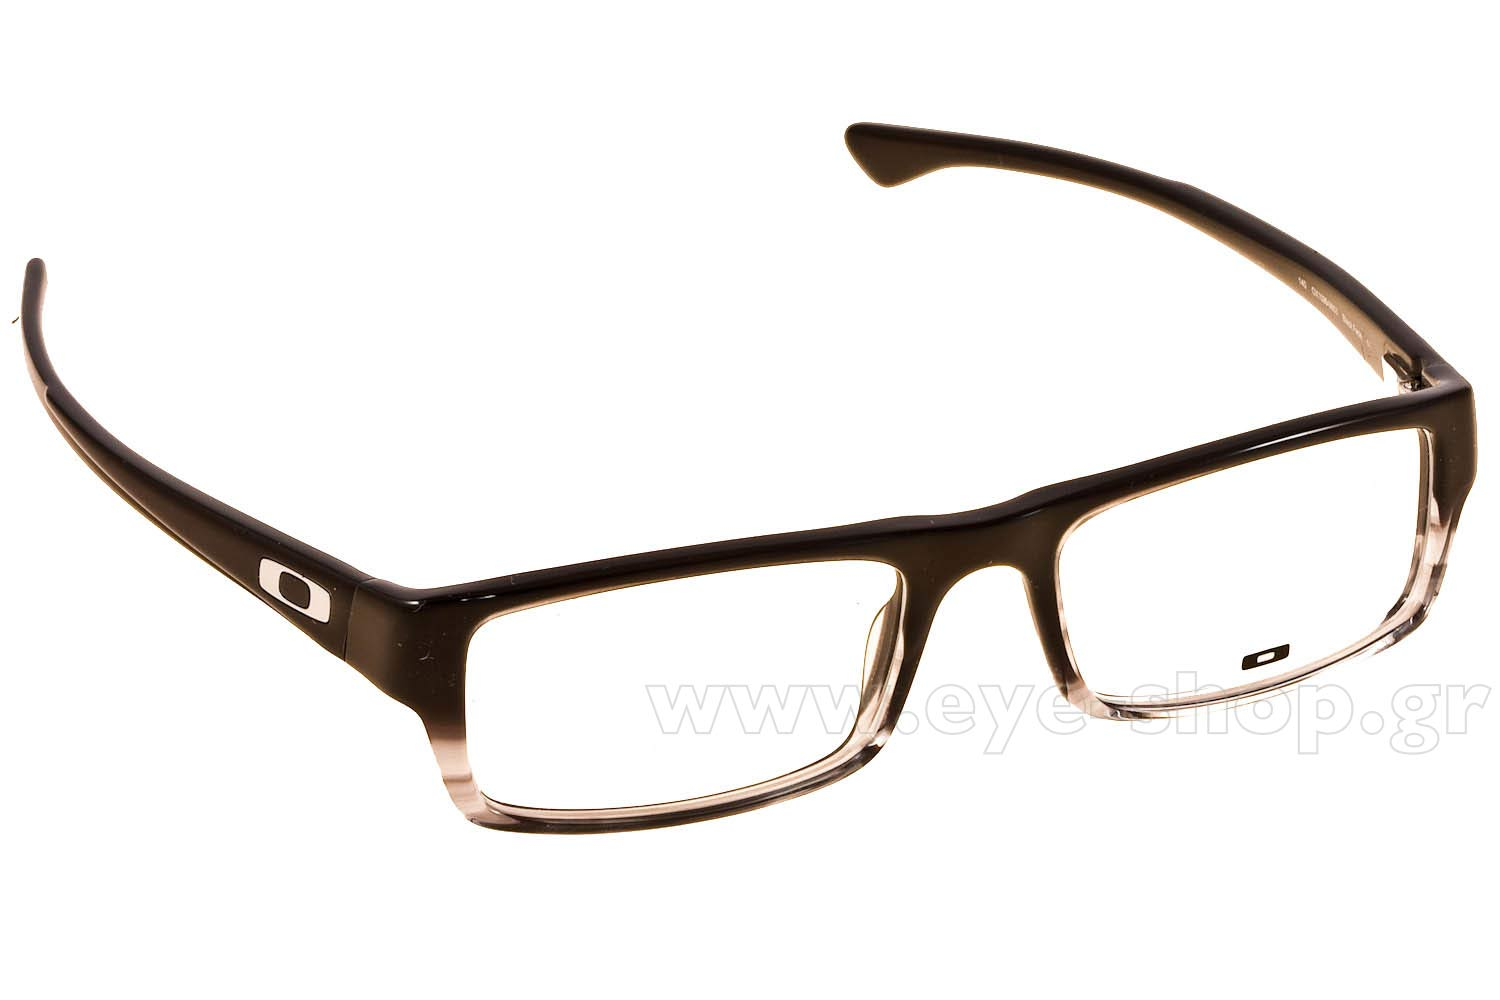 a0e577c0240 How To Tighten Oakley Tailspin Eyeglasses